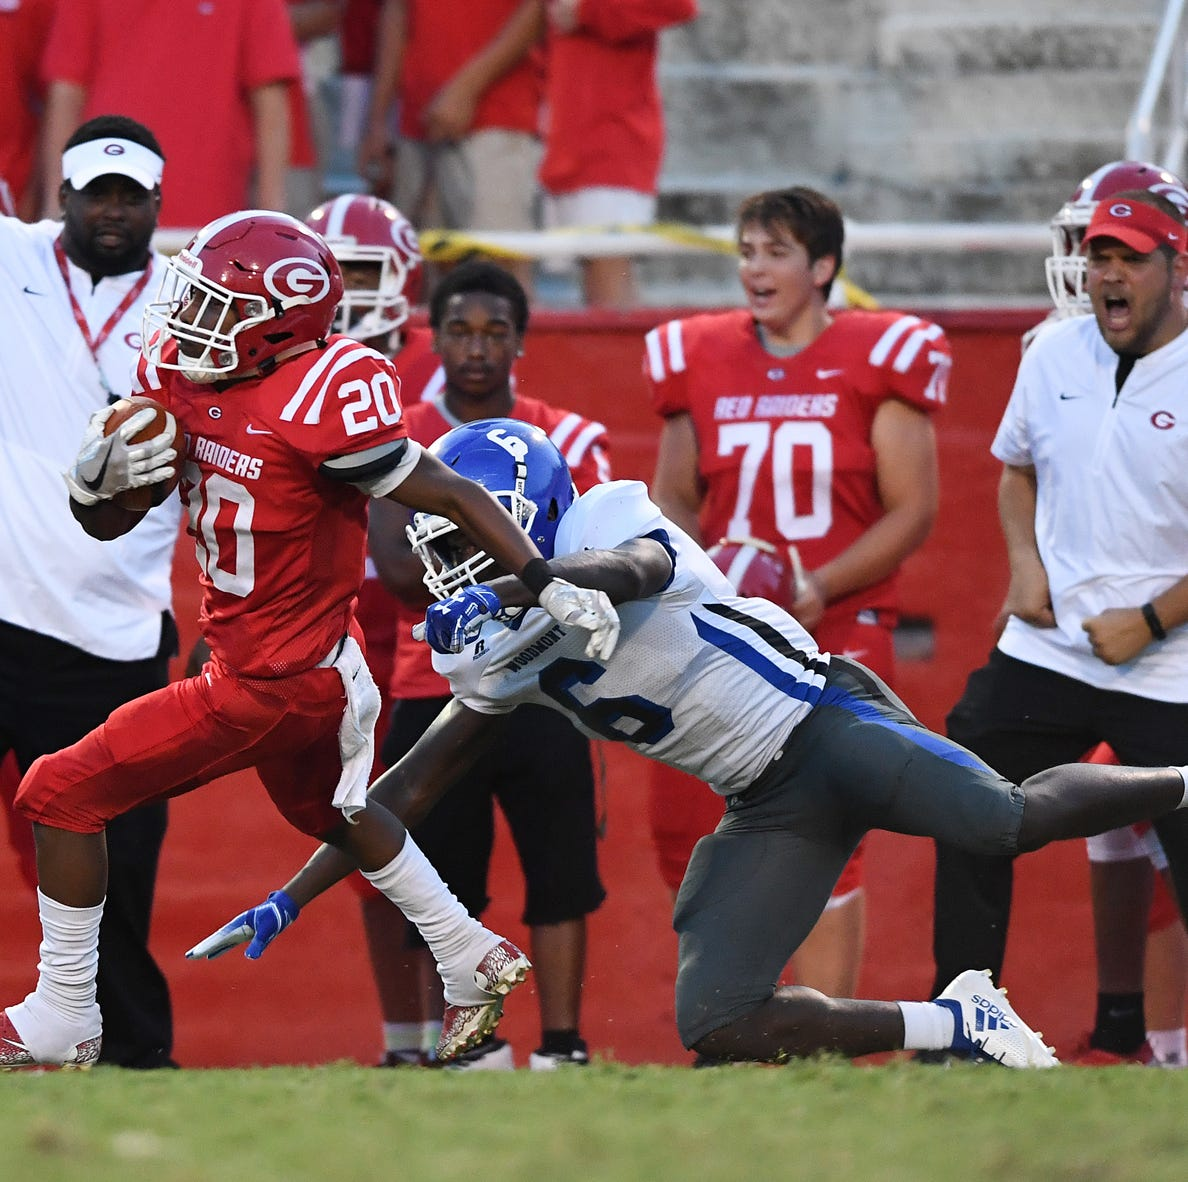 Wakefield, new receivers step up for Greenville against Woodmont